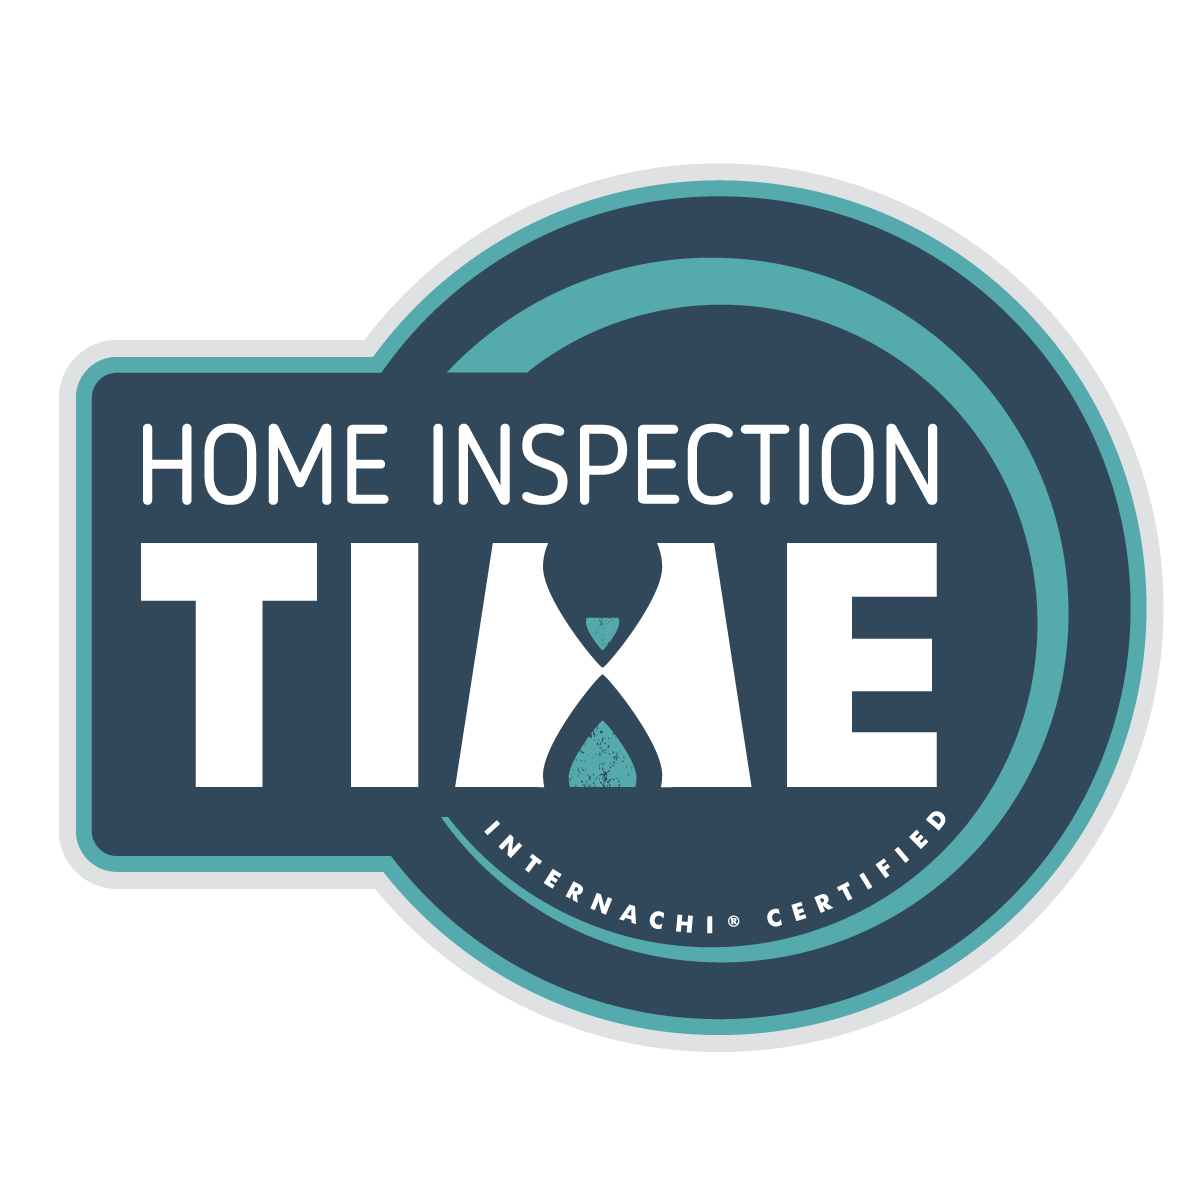 home inspection time logov2 1200px